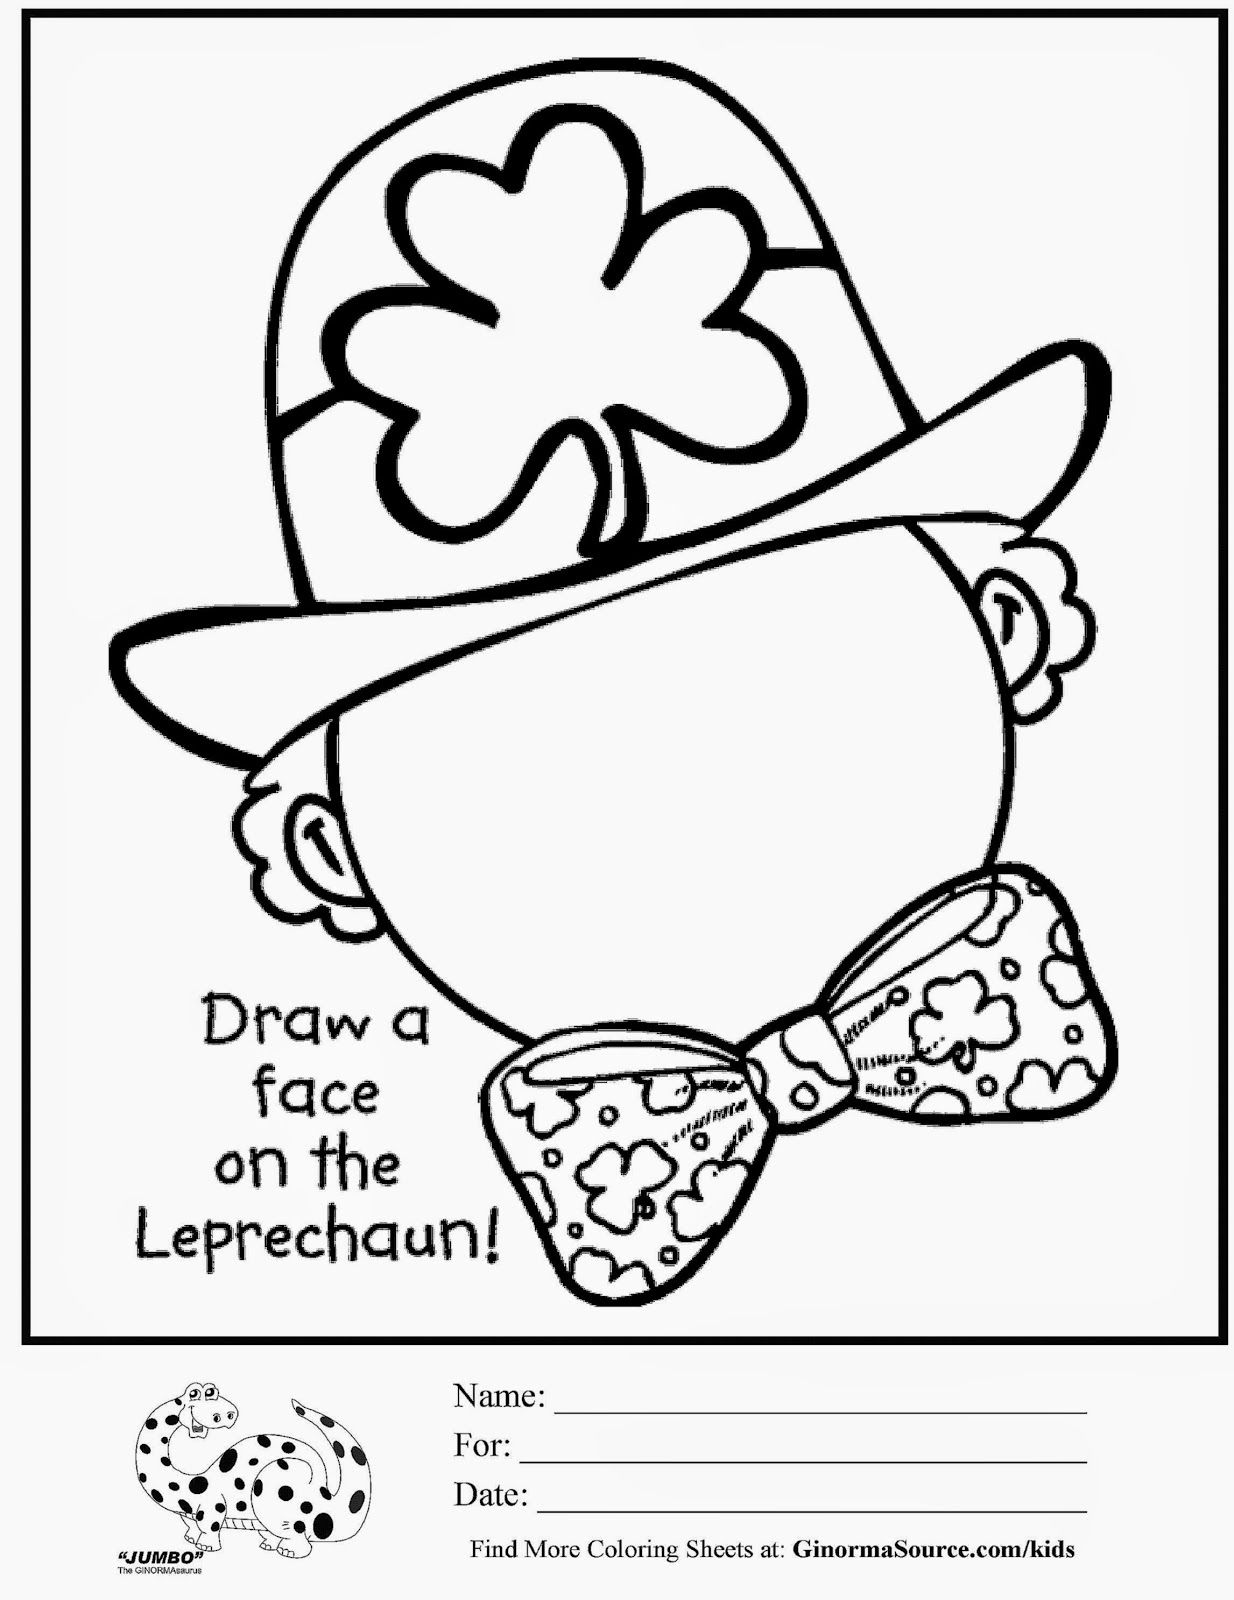 St Patricks Coloring Pages For Adults To Color